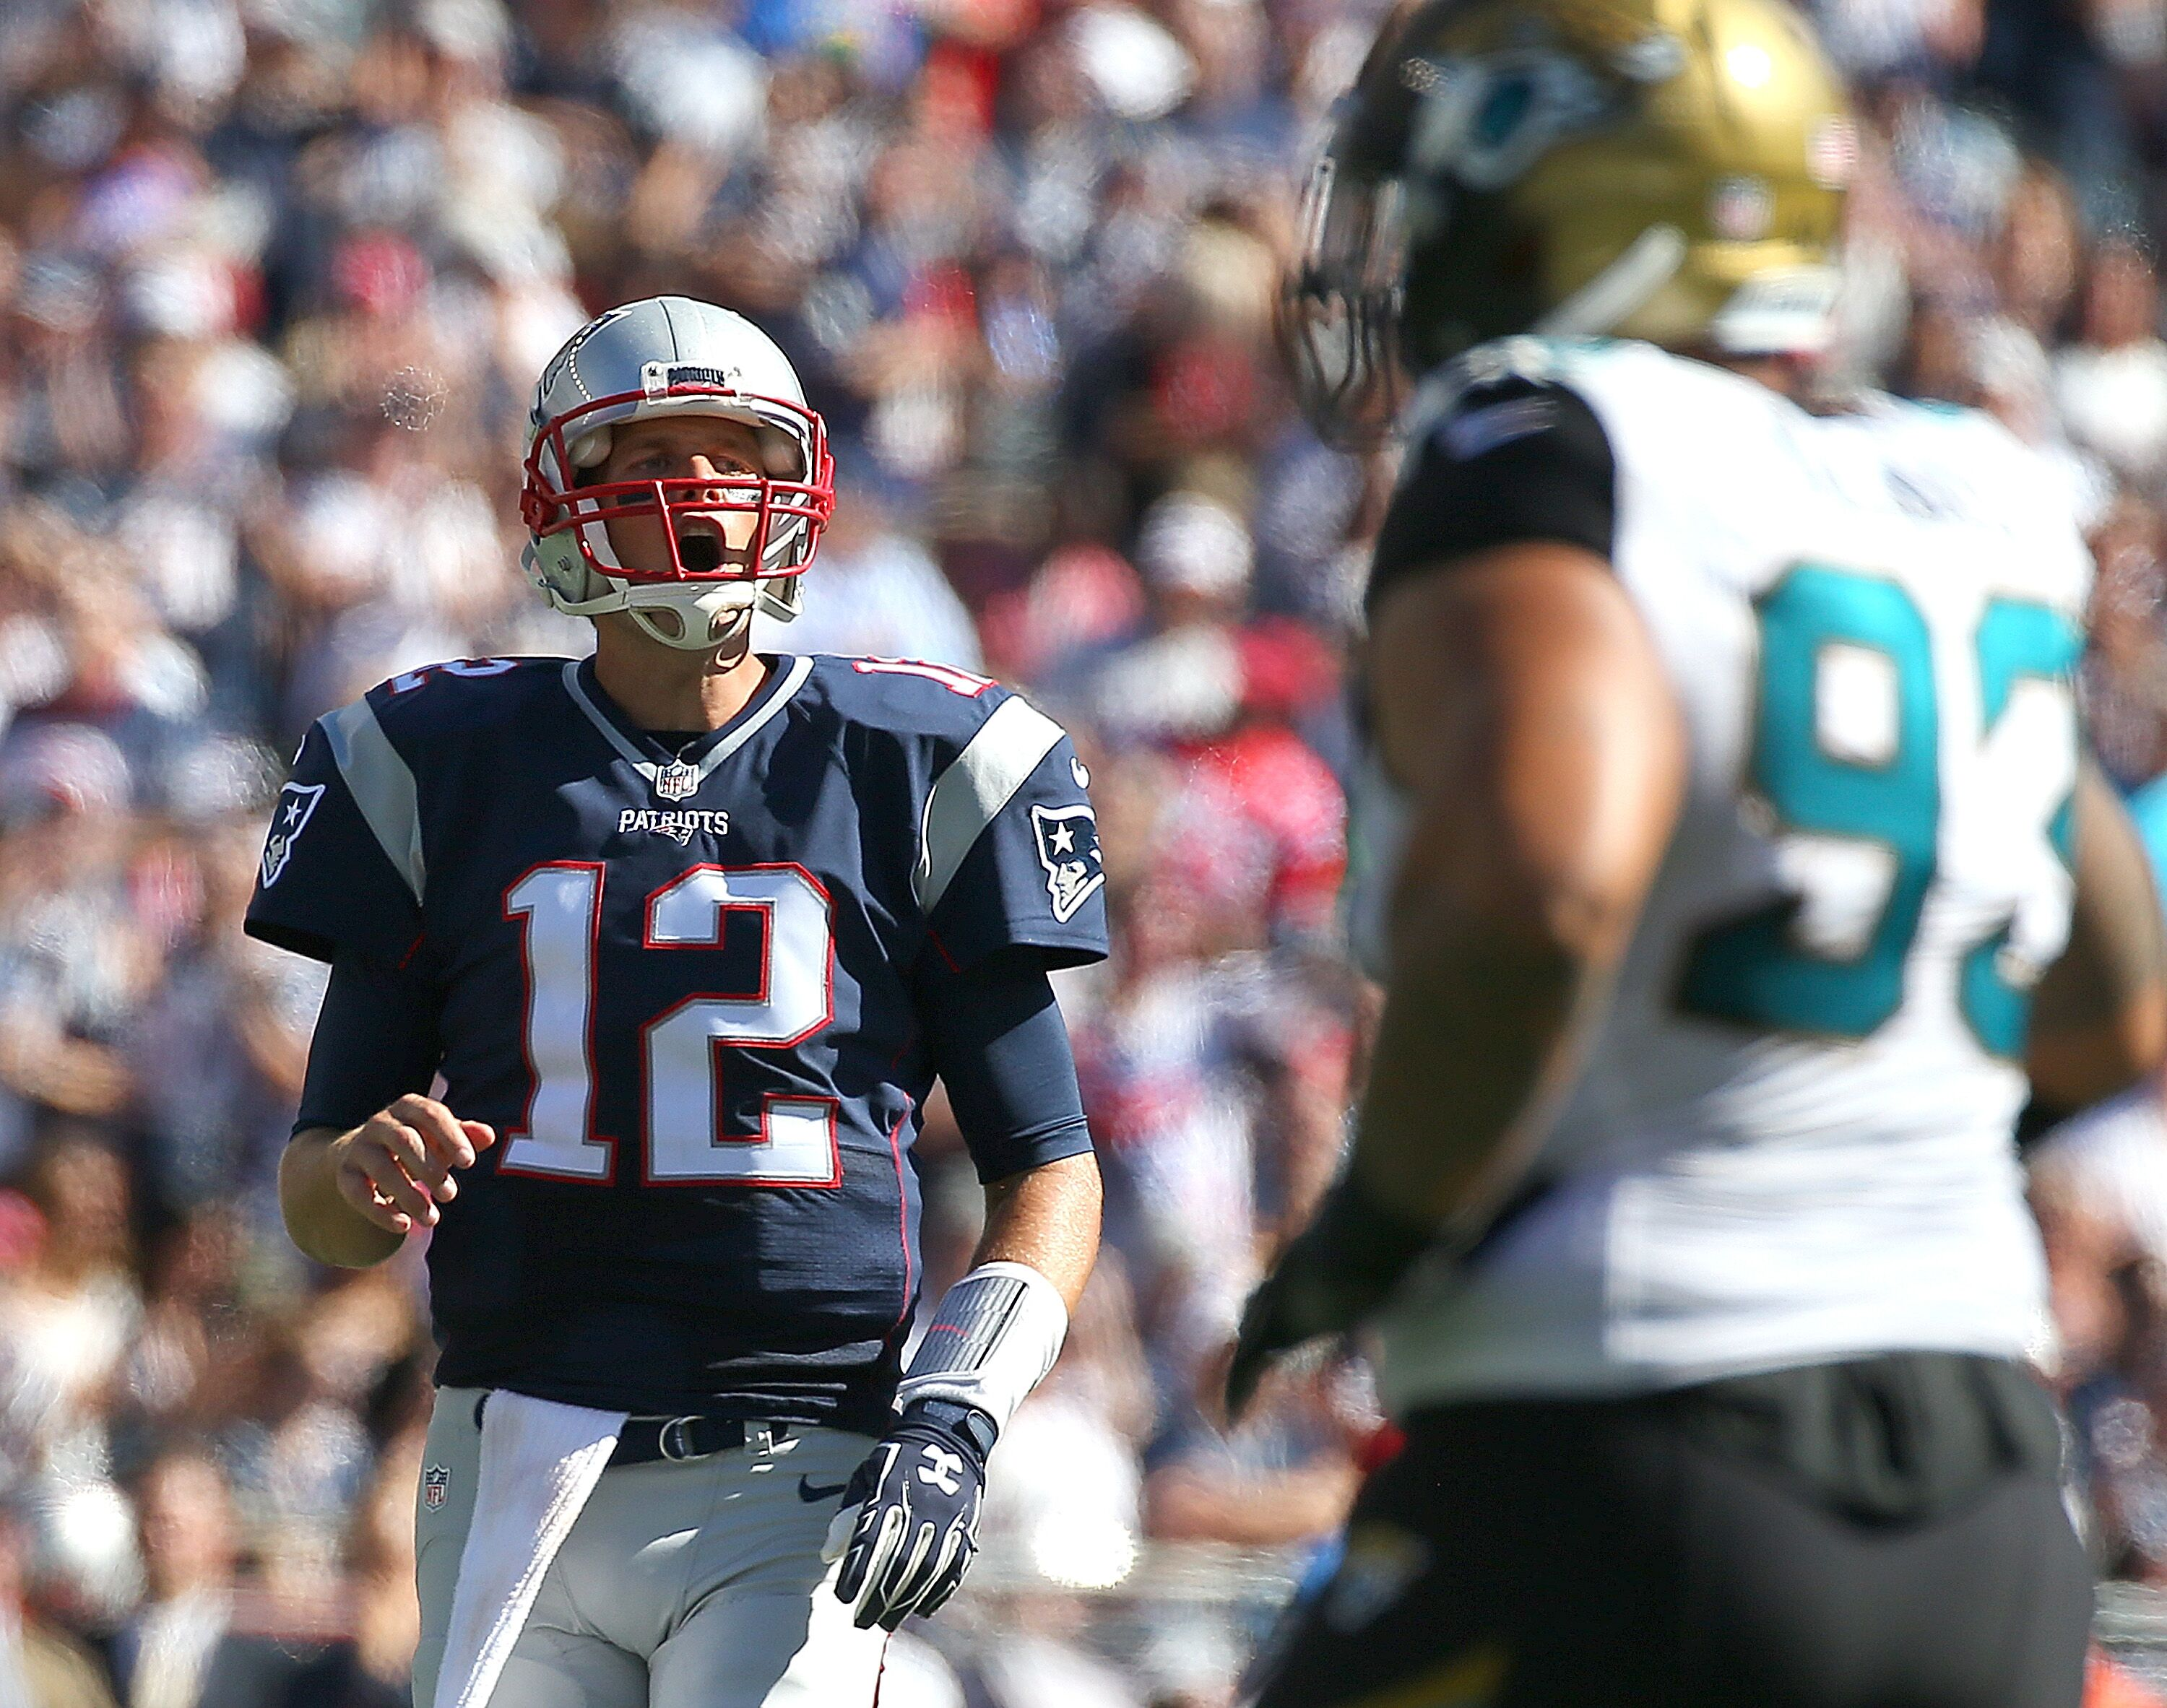 The New England Patriots and Jacksonville Jaguars square off in the AFC Championship at Gillette Stadium on Sunday January 21 2018